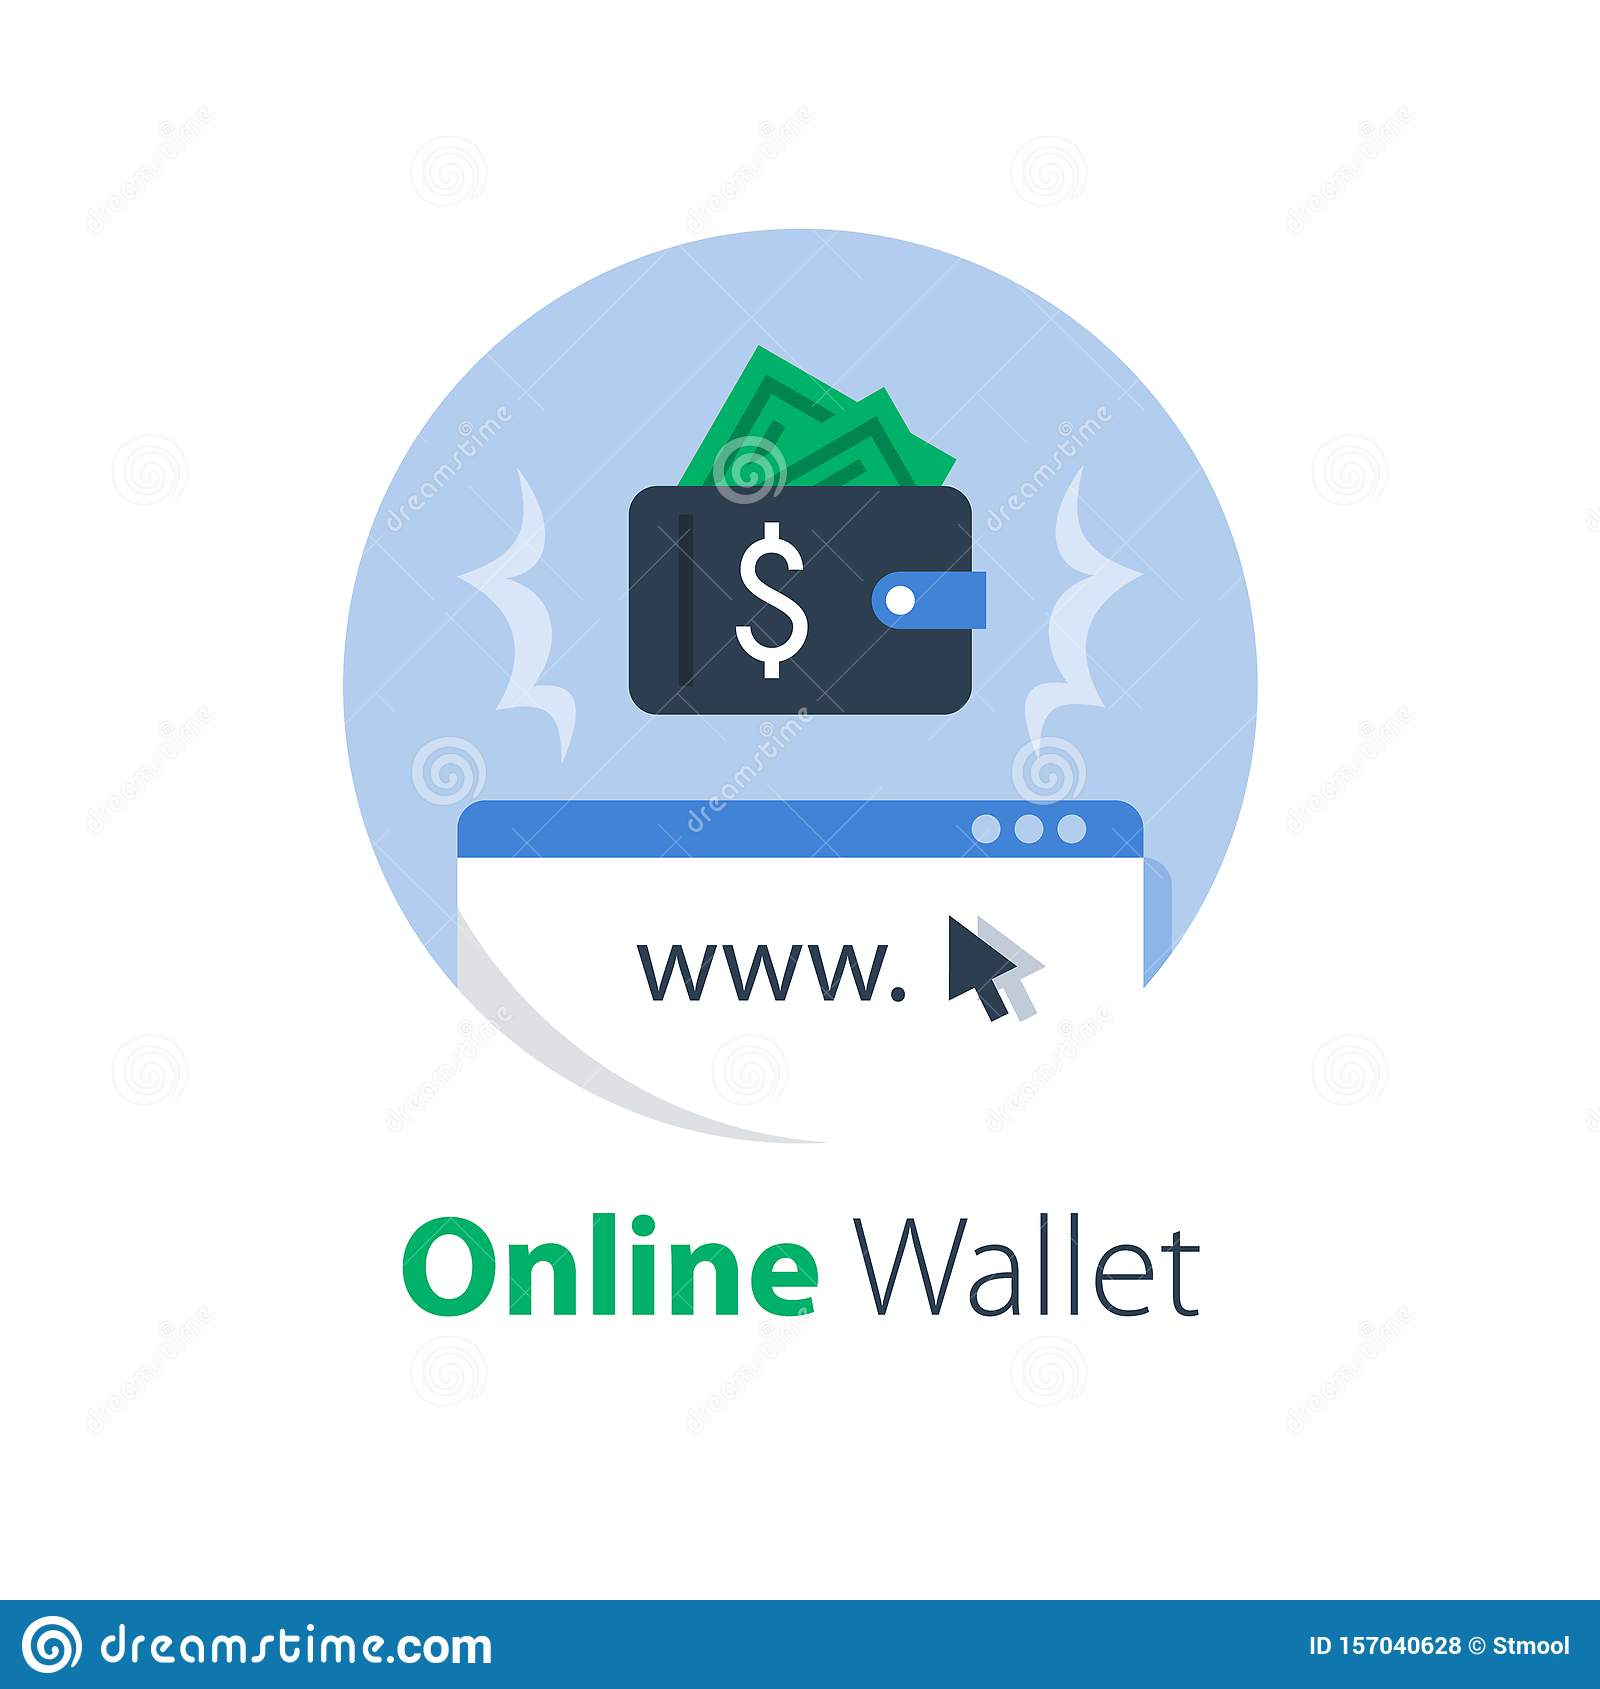 Online Wallet And Banking Services, Internet Payment And